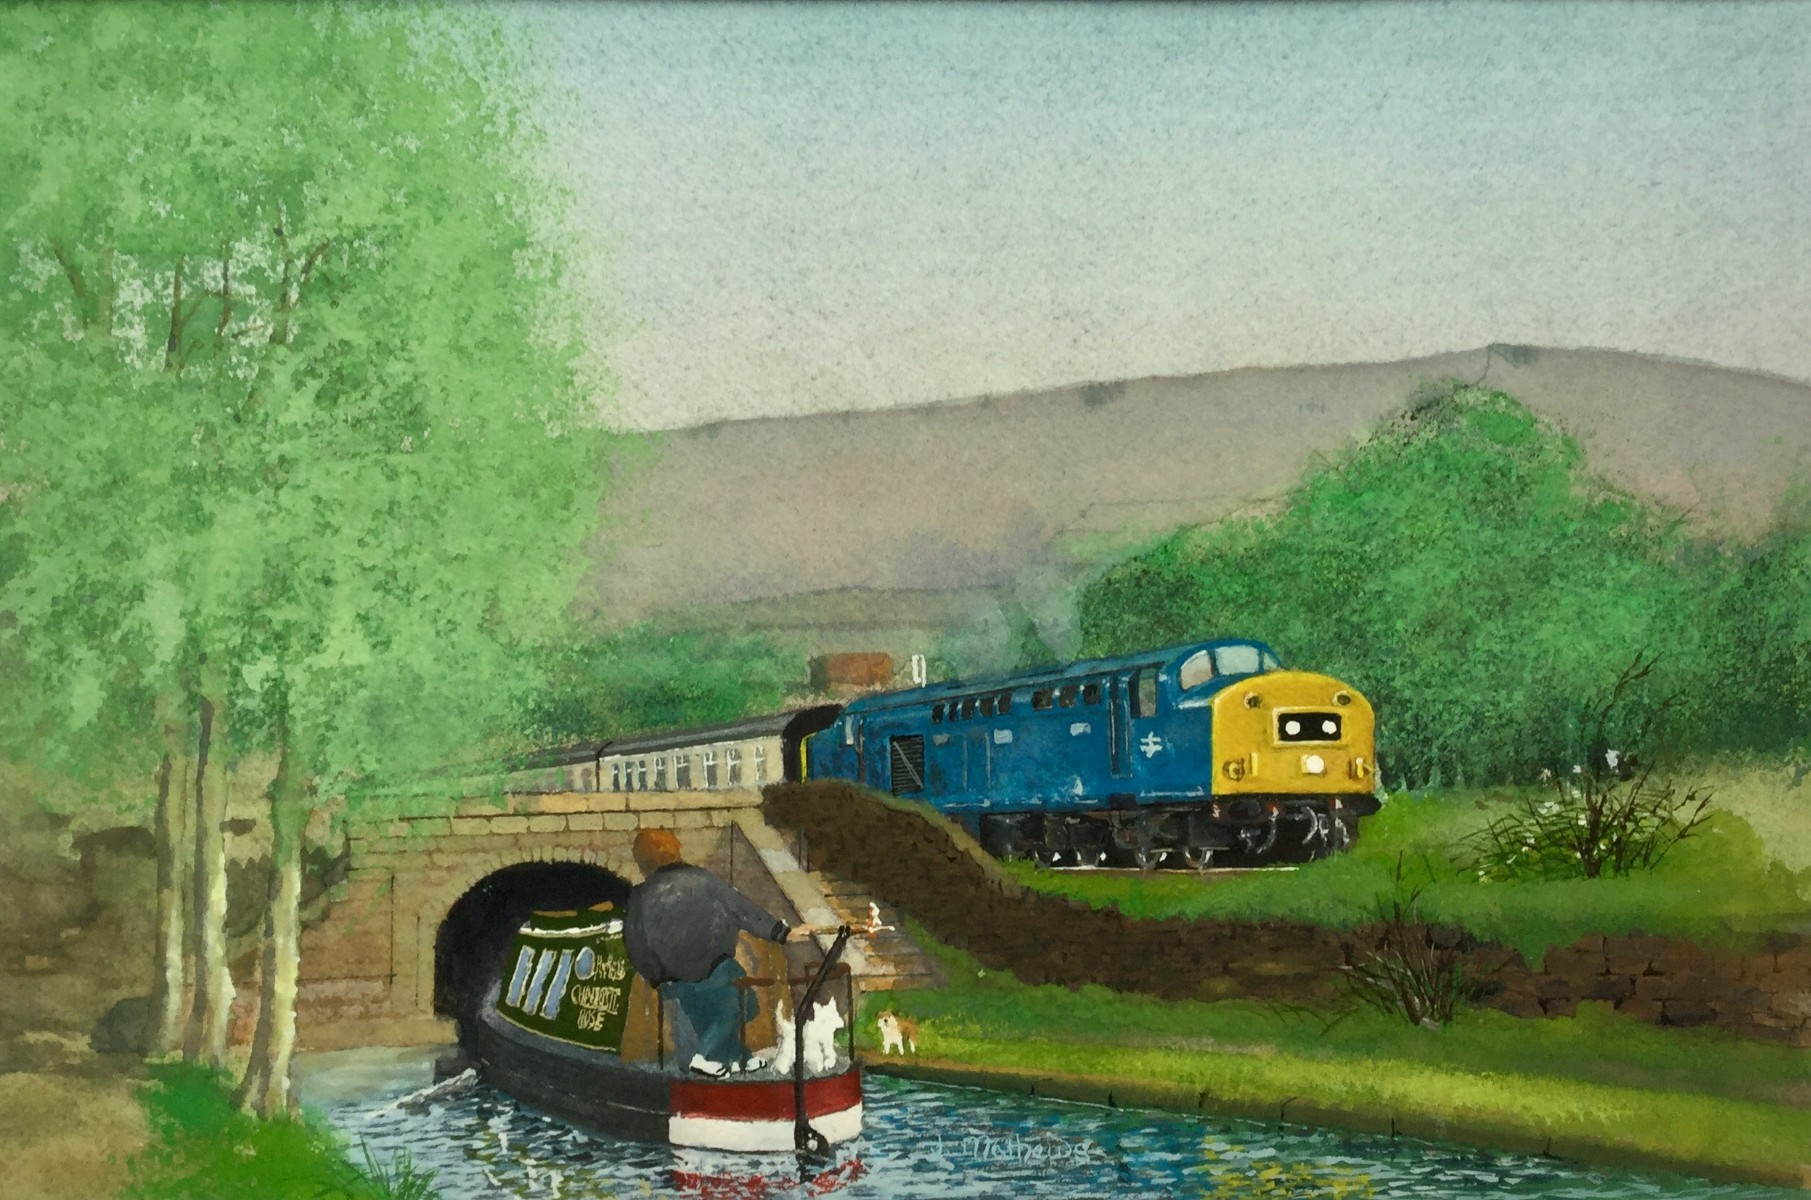 Standedge Tunnels by Jim Mathews